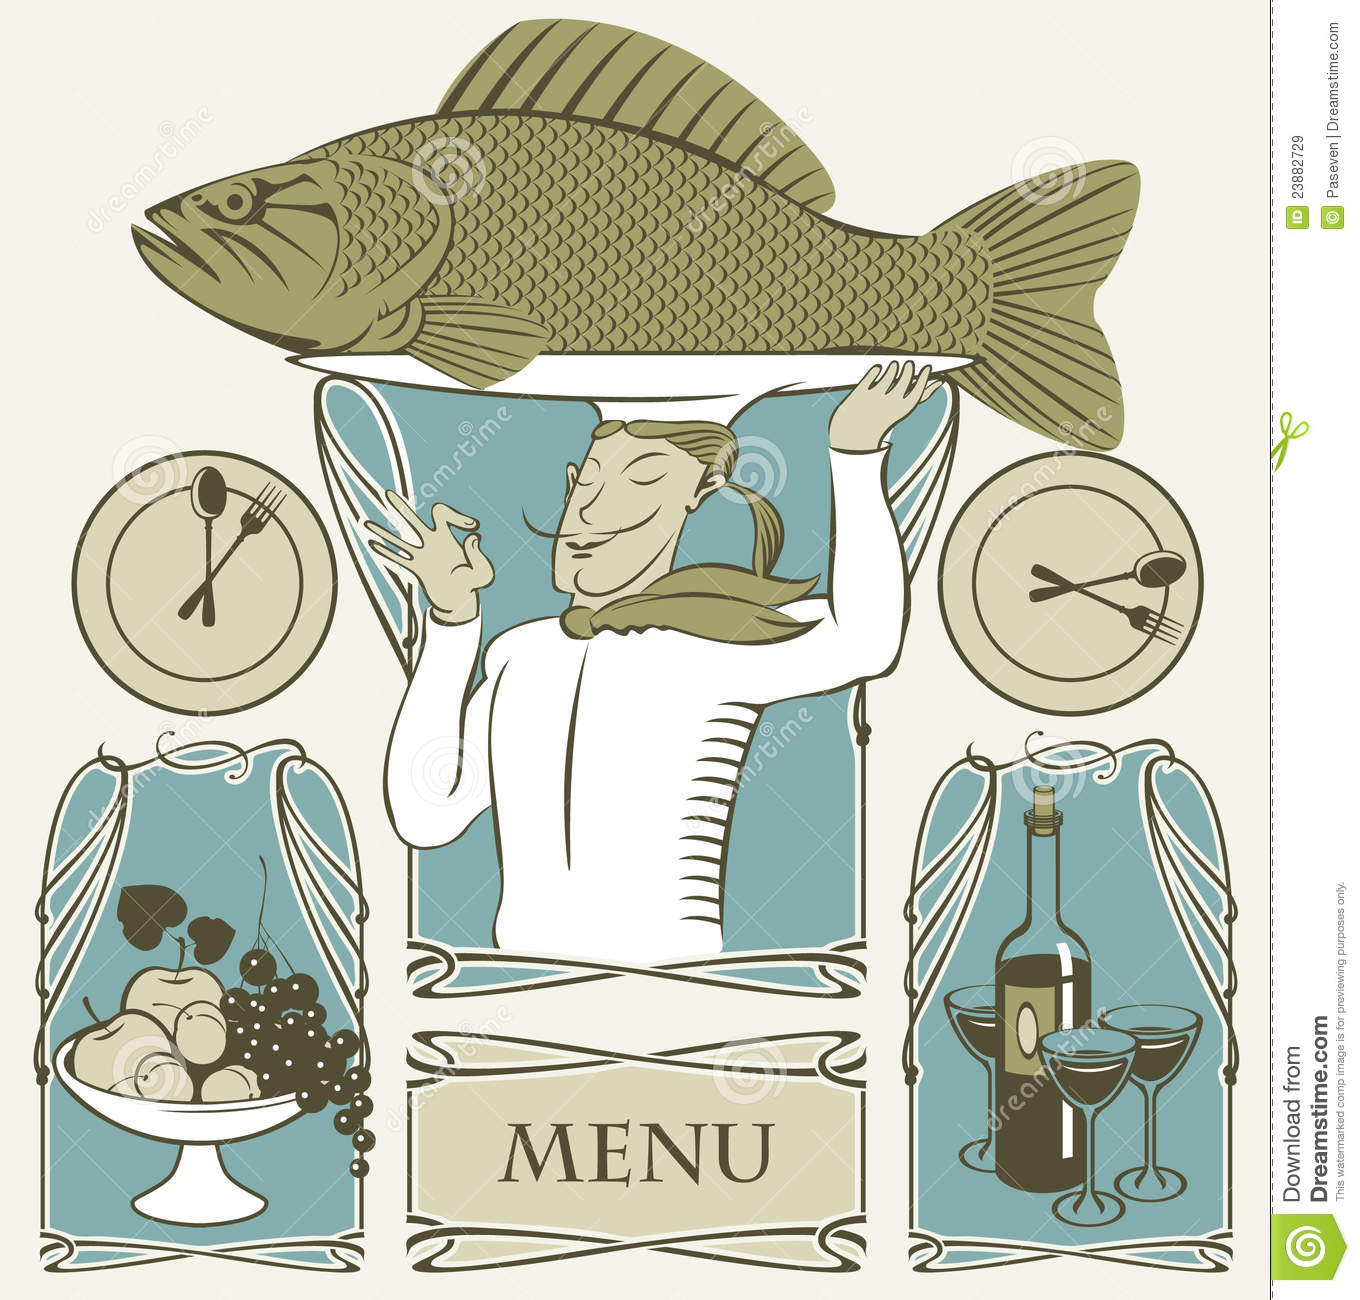 how to acid cook fish